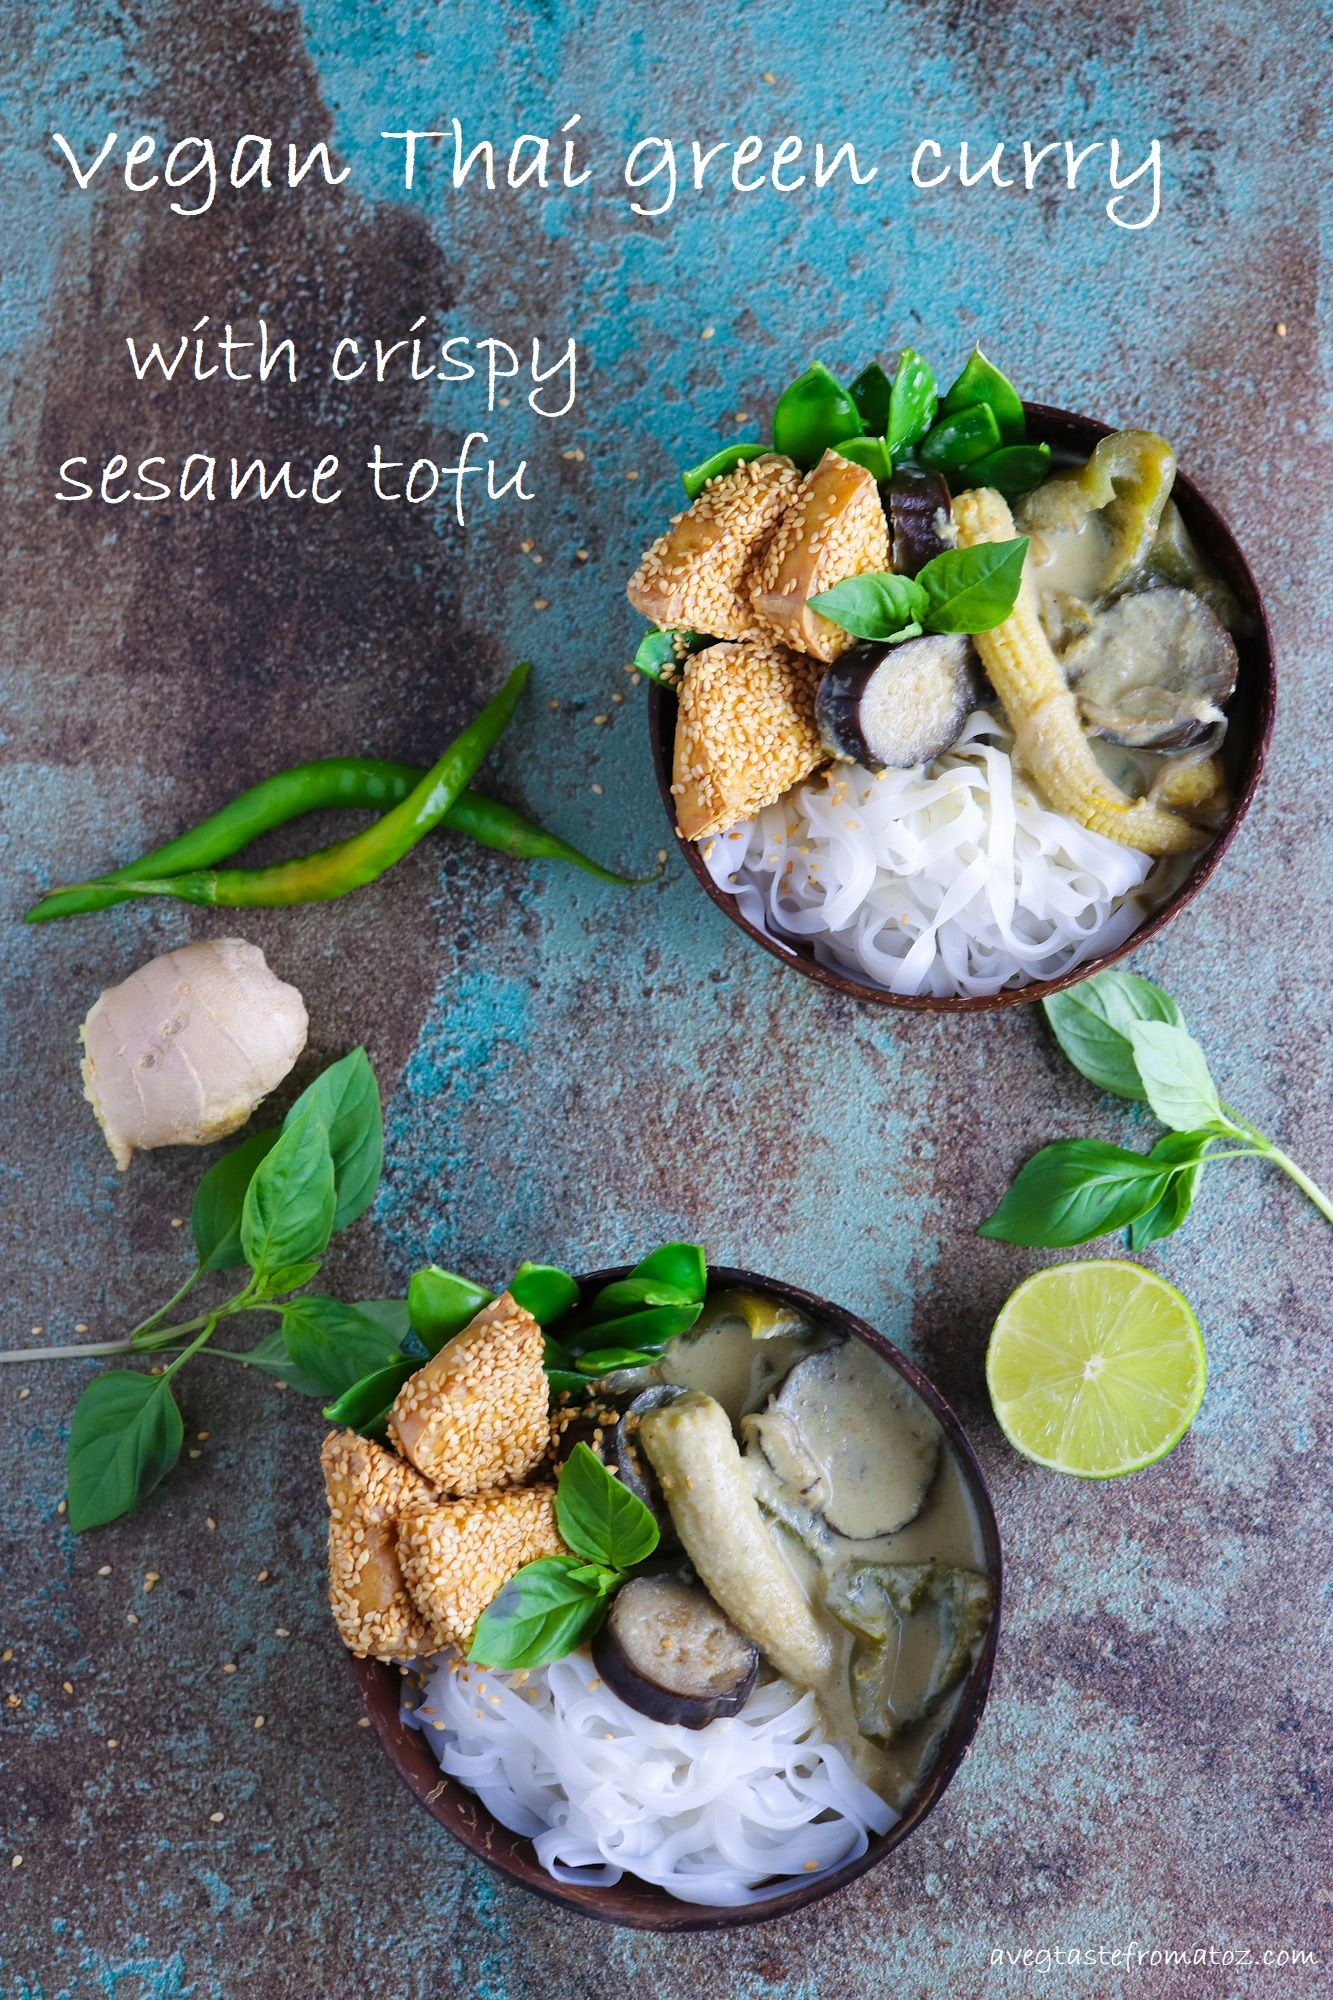 Thai Green Curry with Sesame Tofu My take on a classic Thai Green Curry with Crispy Sesame Tofu and Rice Noodles.